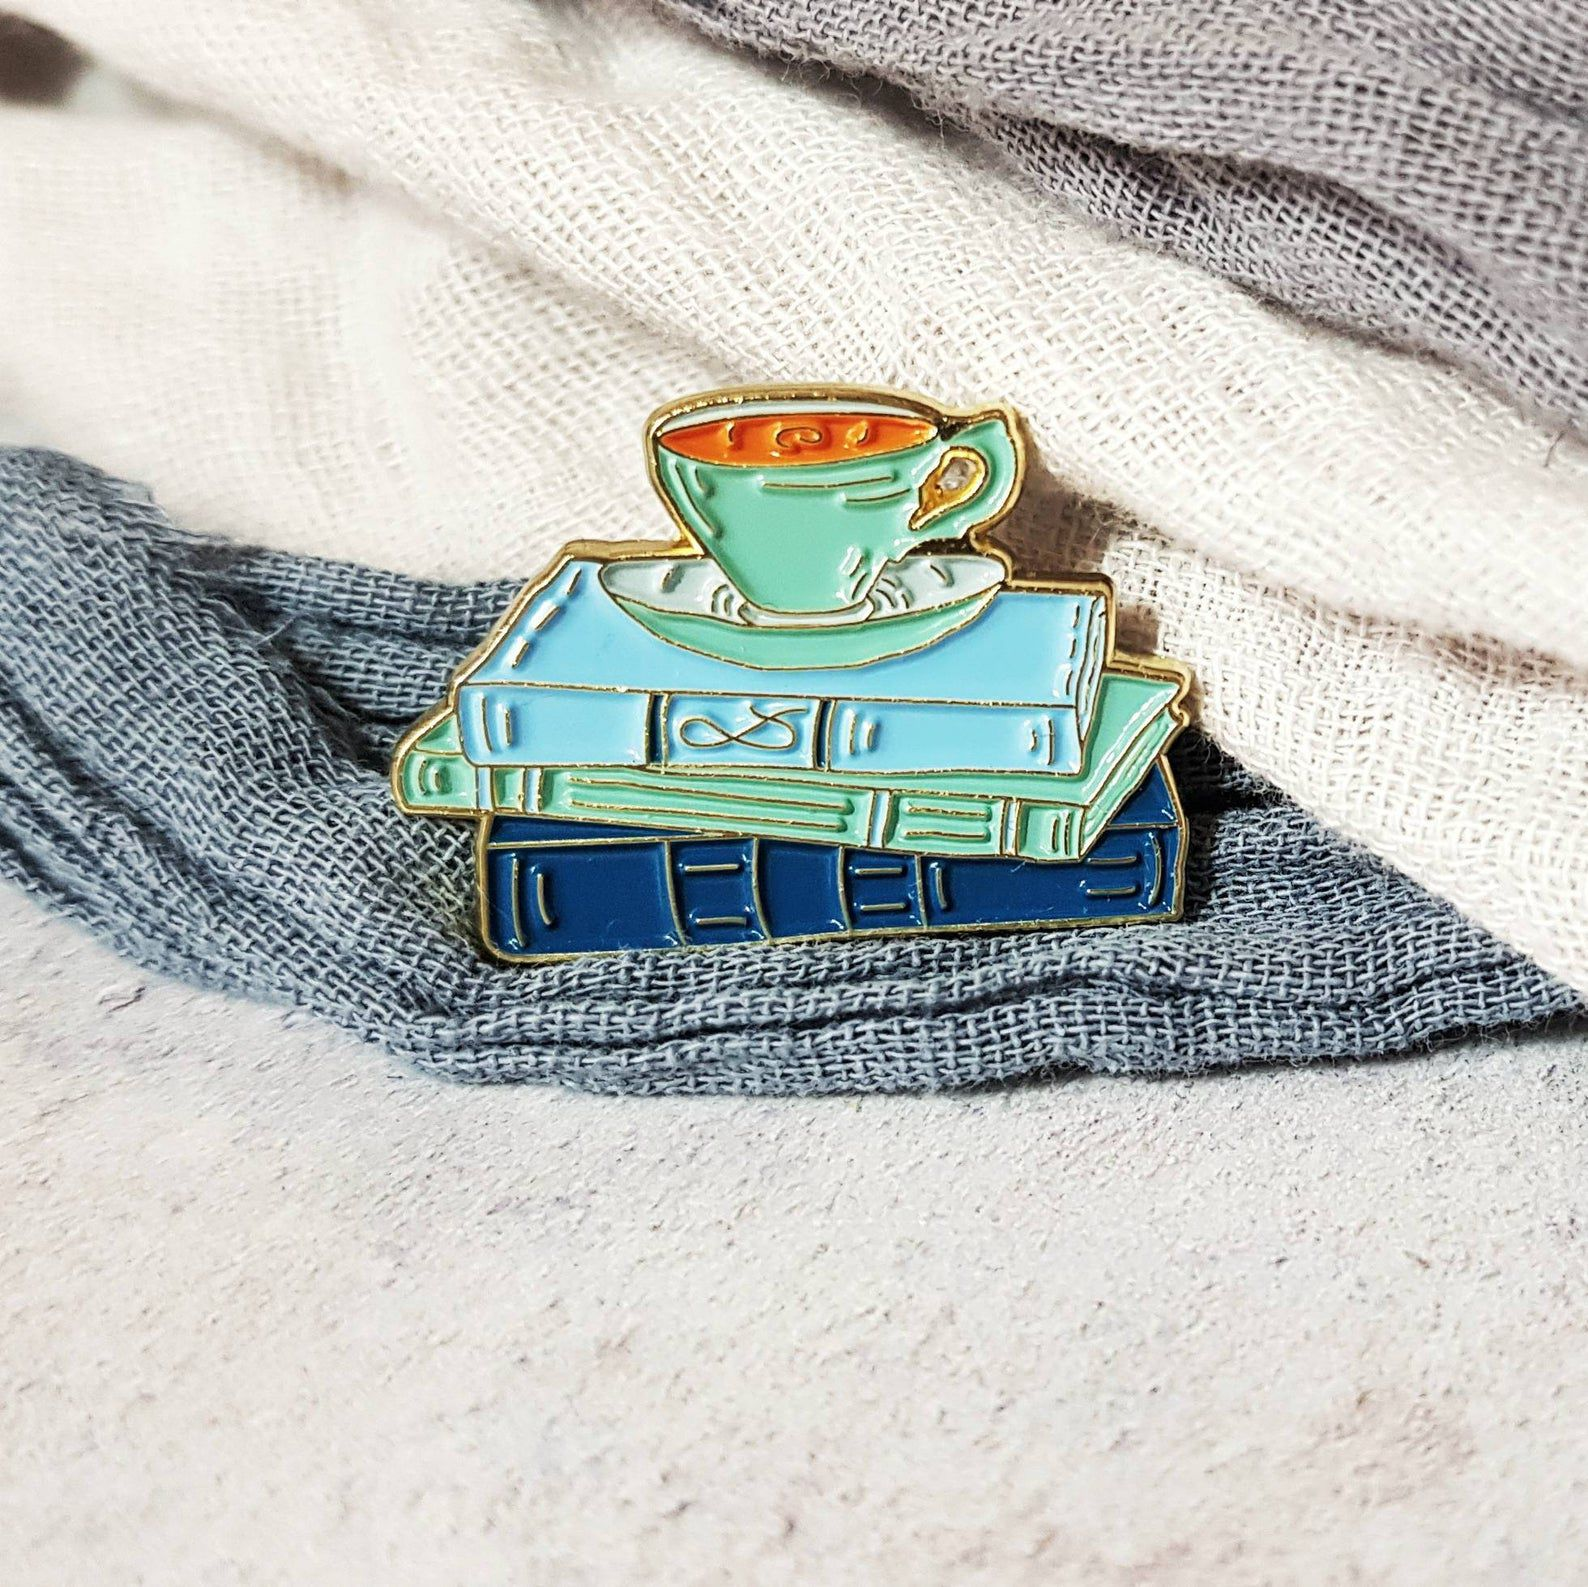 a blue and green enamel pin depicting a stack of books and a tea cup and saucer.